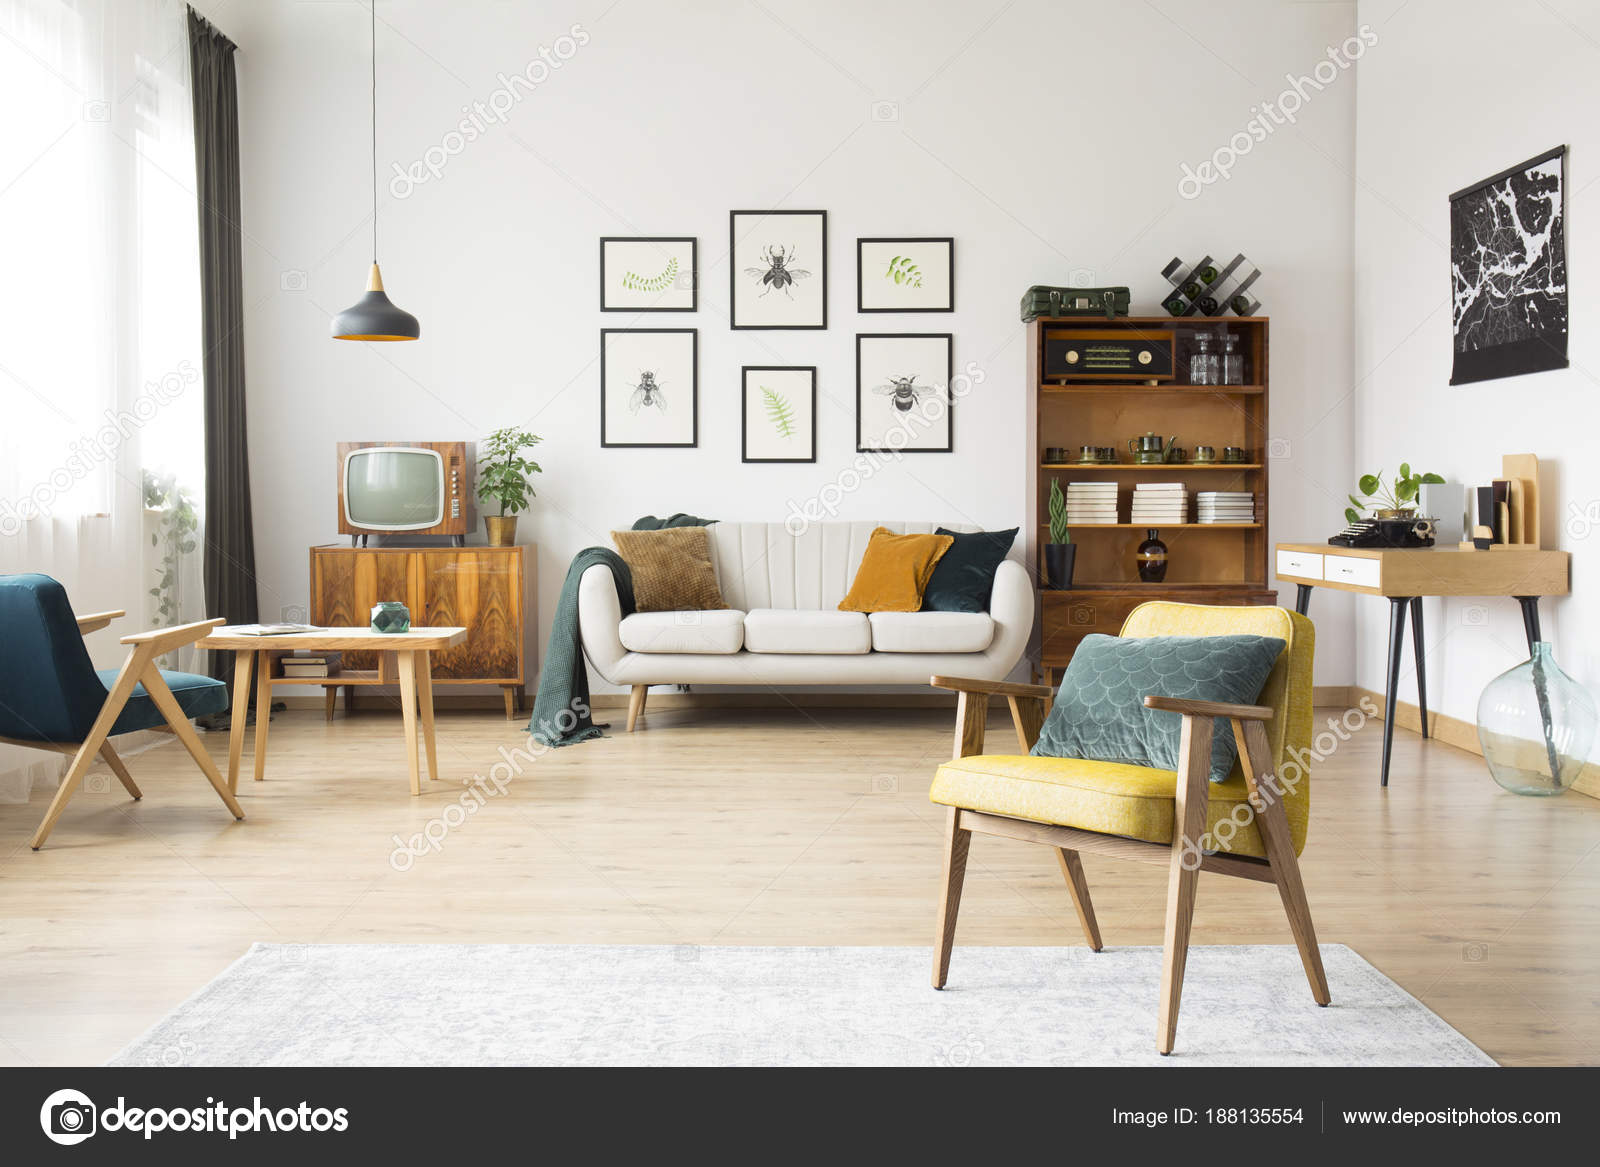 Retro woonkamer interieur — Stockfoto © photographee.eu #188135554